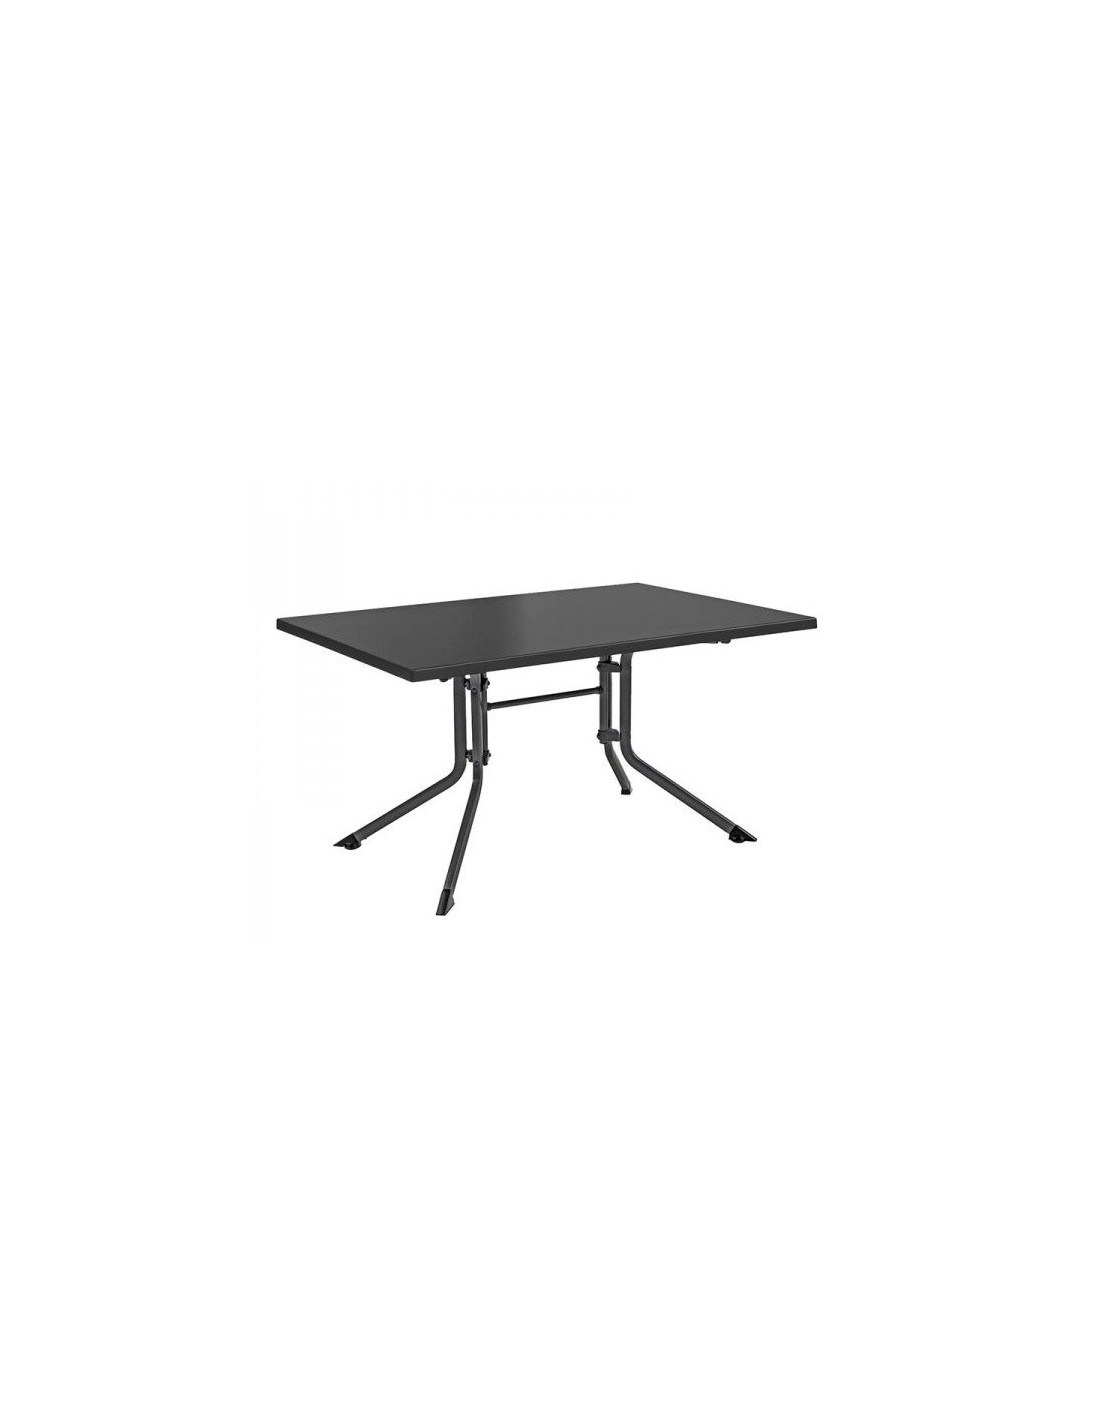 Table de jardin pliante carr e en aluminium mod le advantage - Table pliante de jardin ...